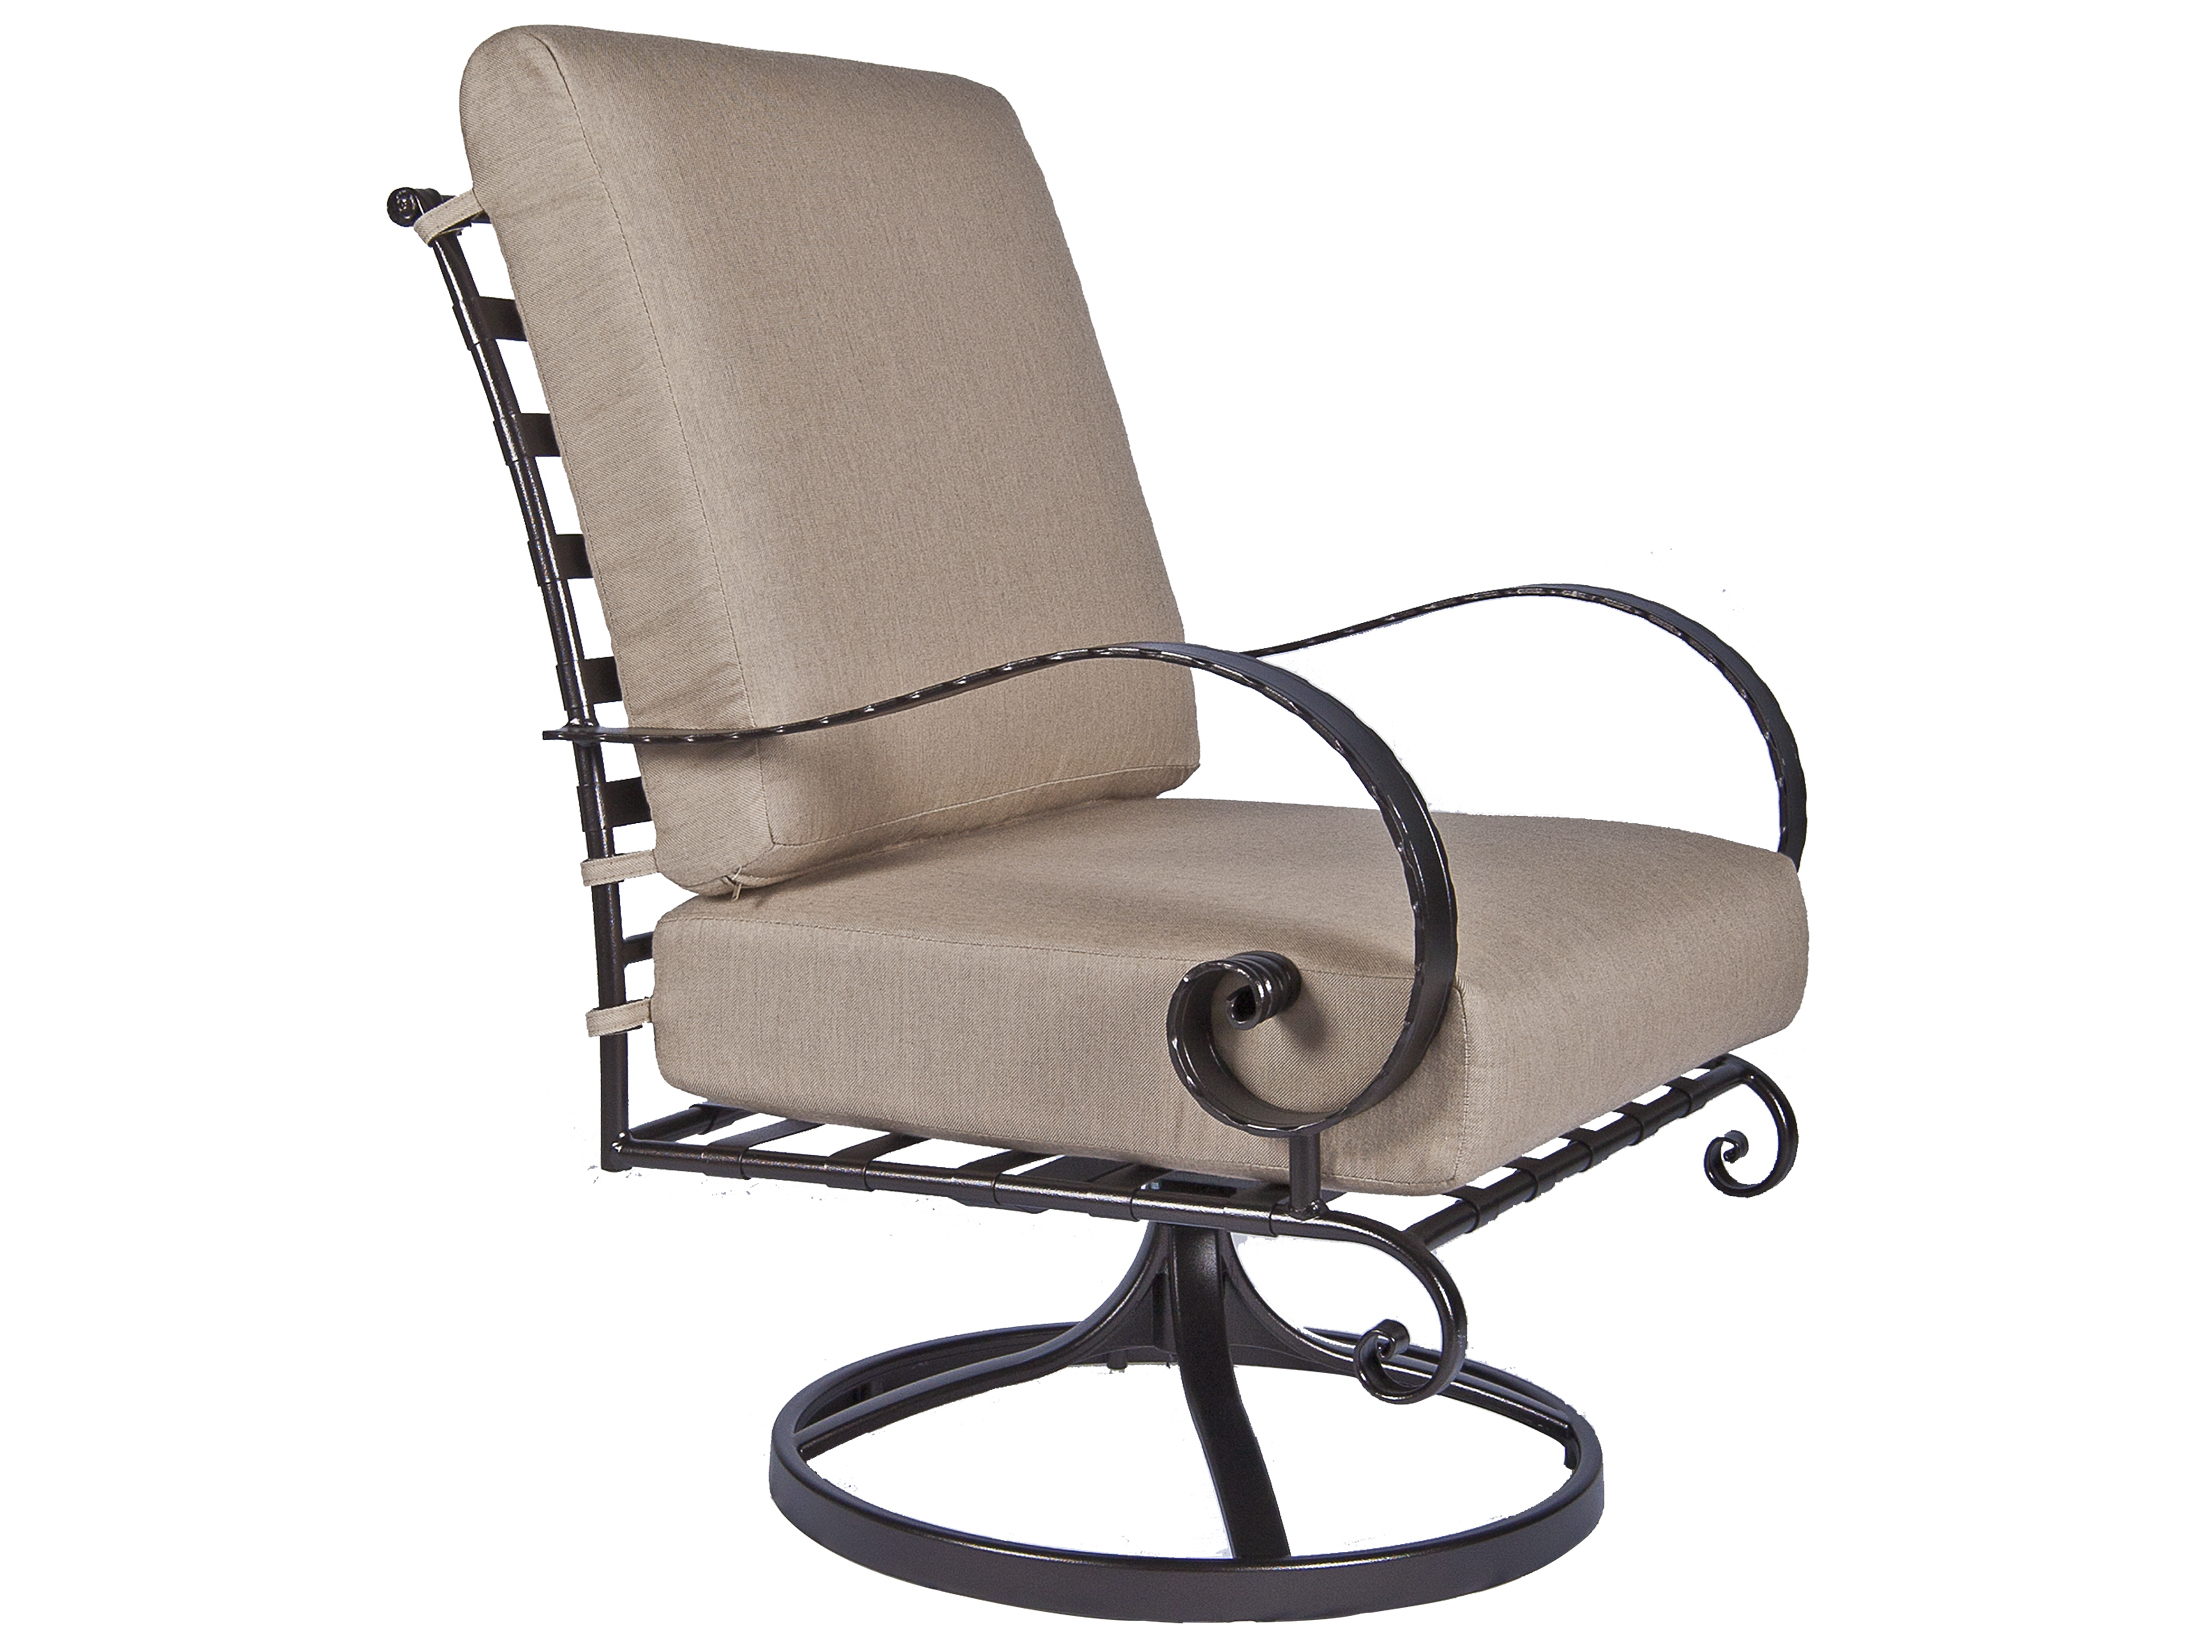 Ow Lee Classico Wide Arms Wrought Iron Swivel Rocker